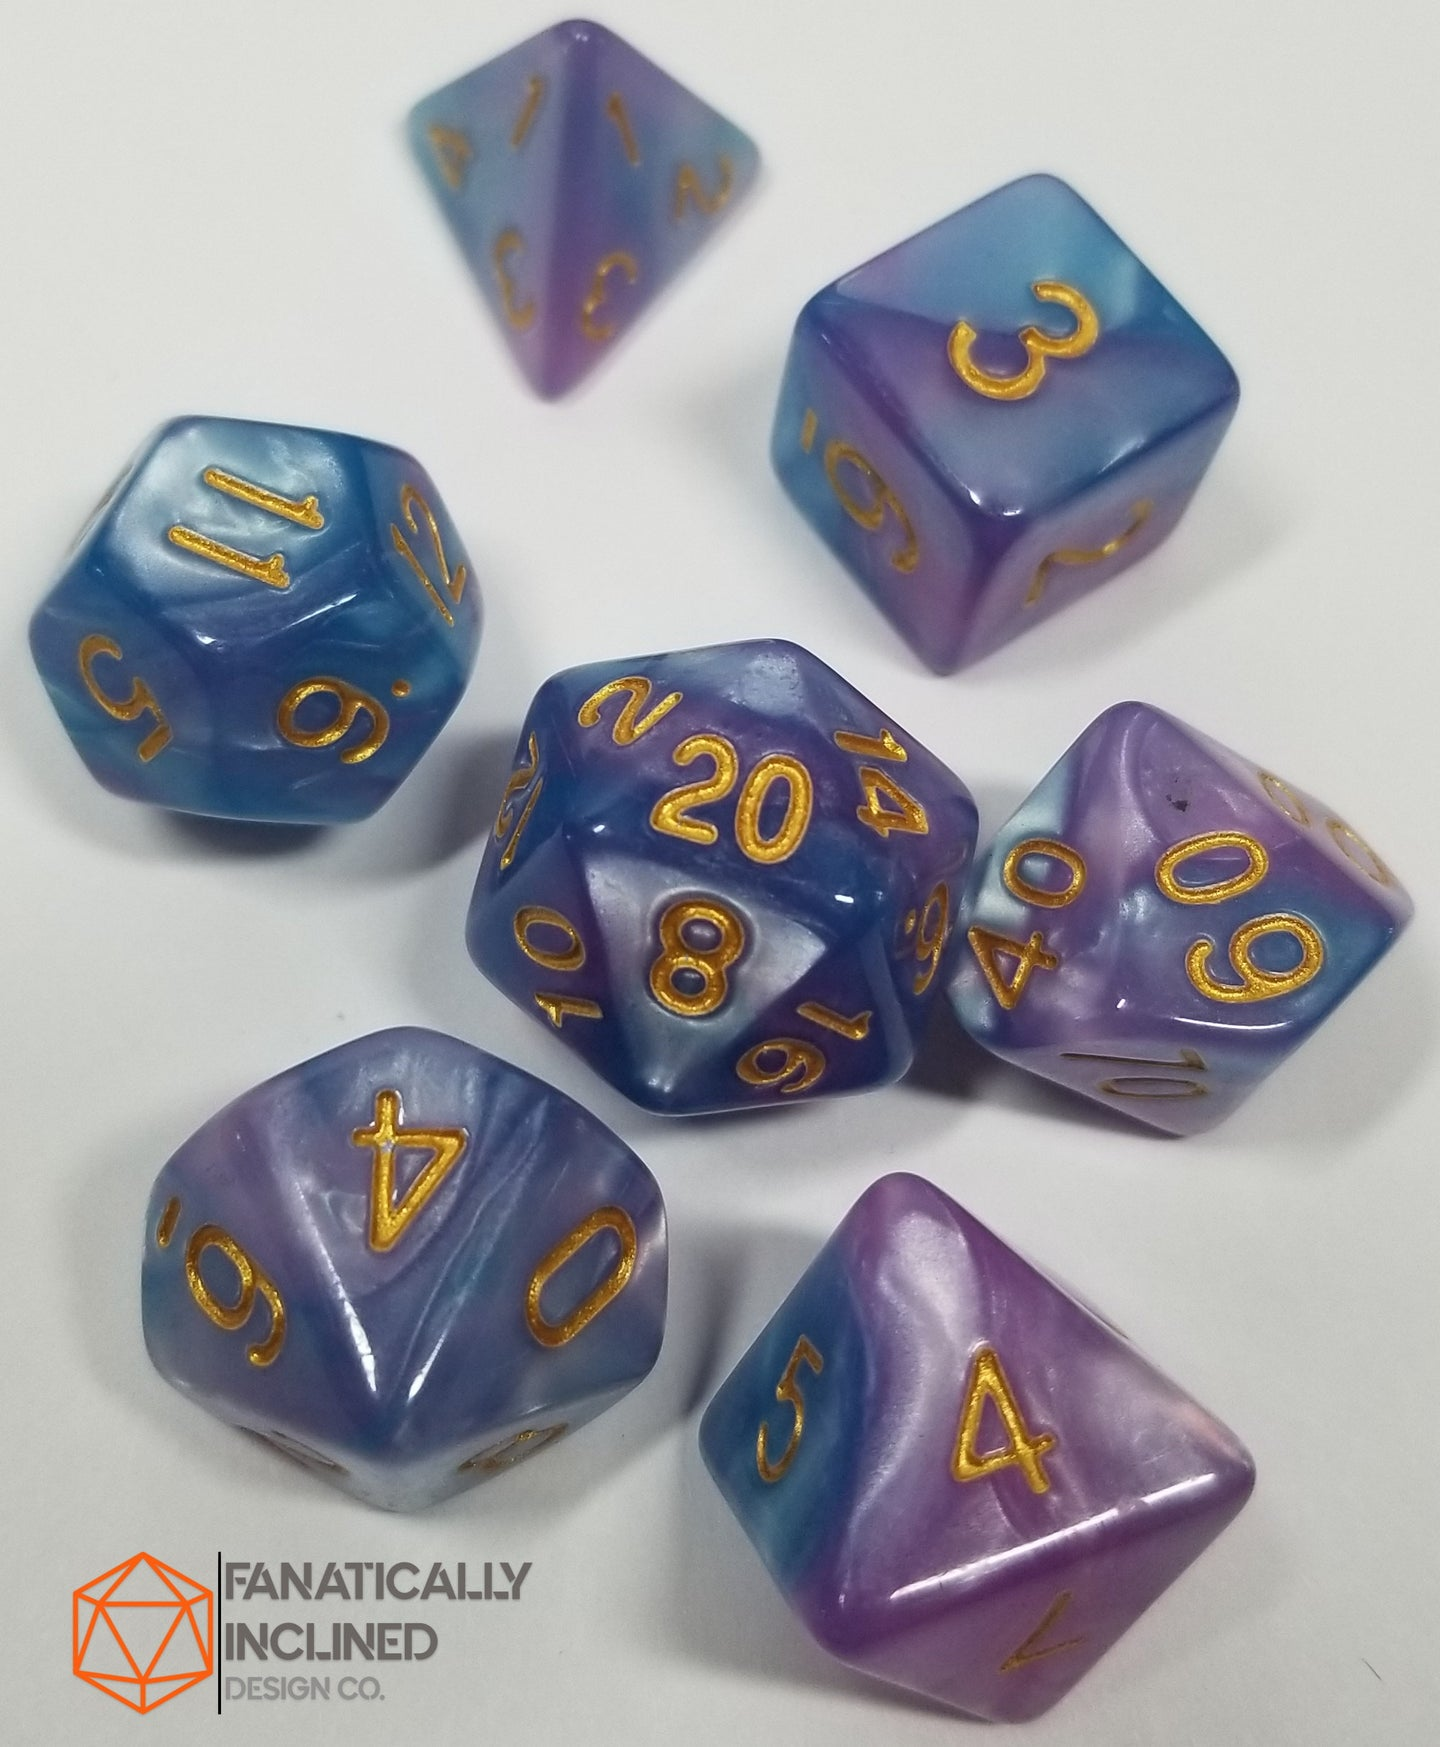 Cotton Candy Galaxy Pink Blue Pearl 7pc Dice Set